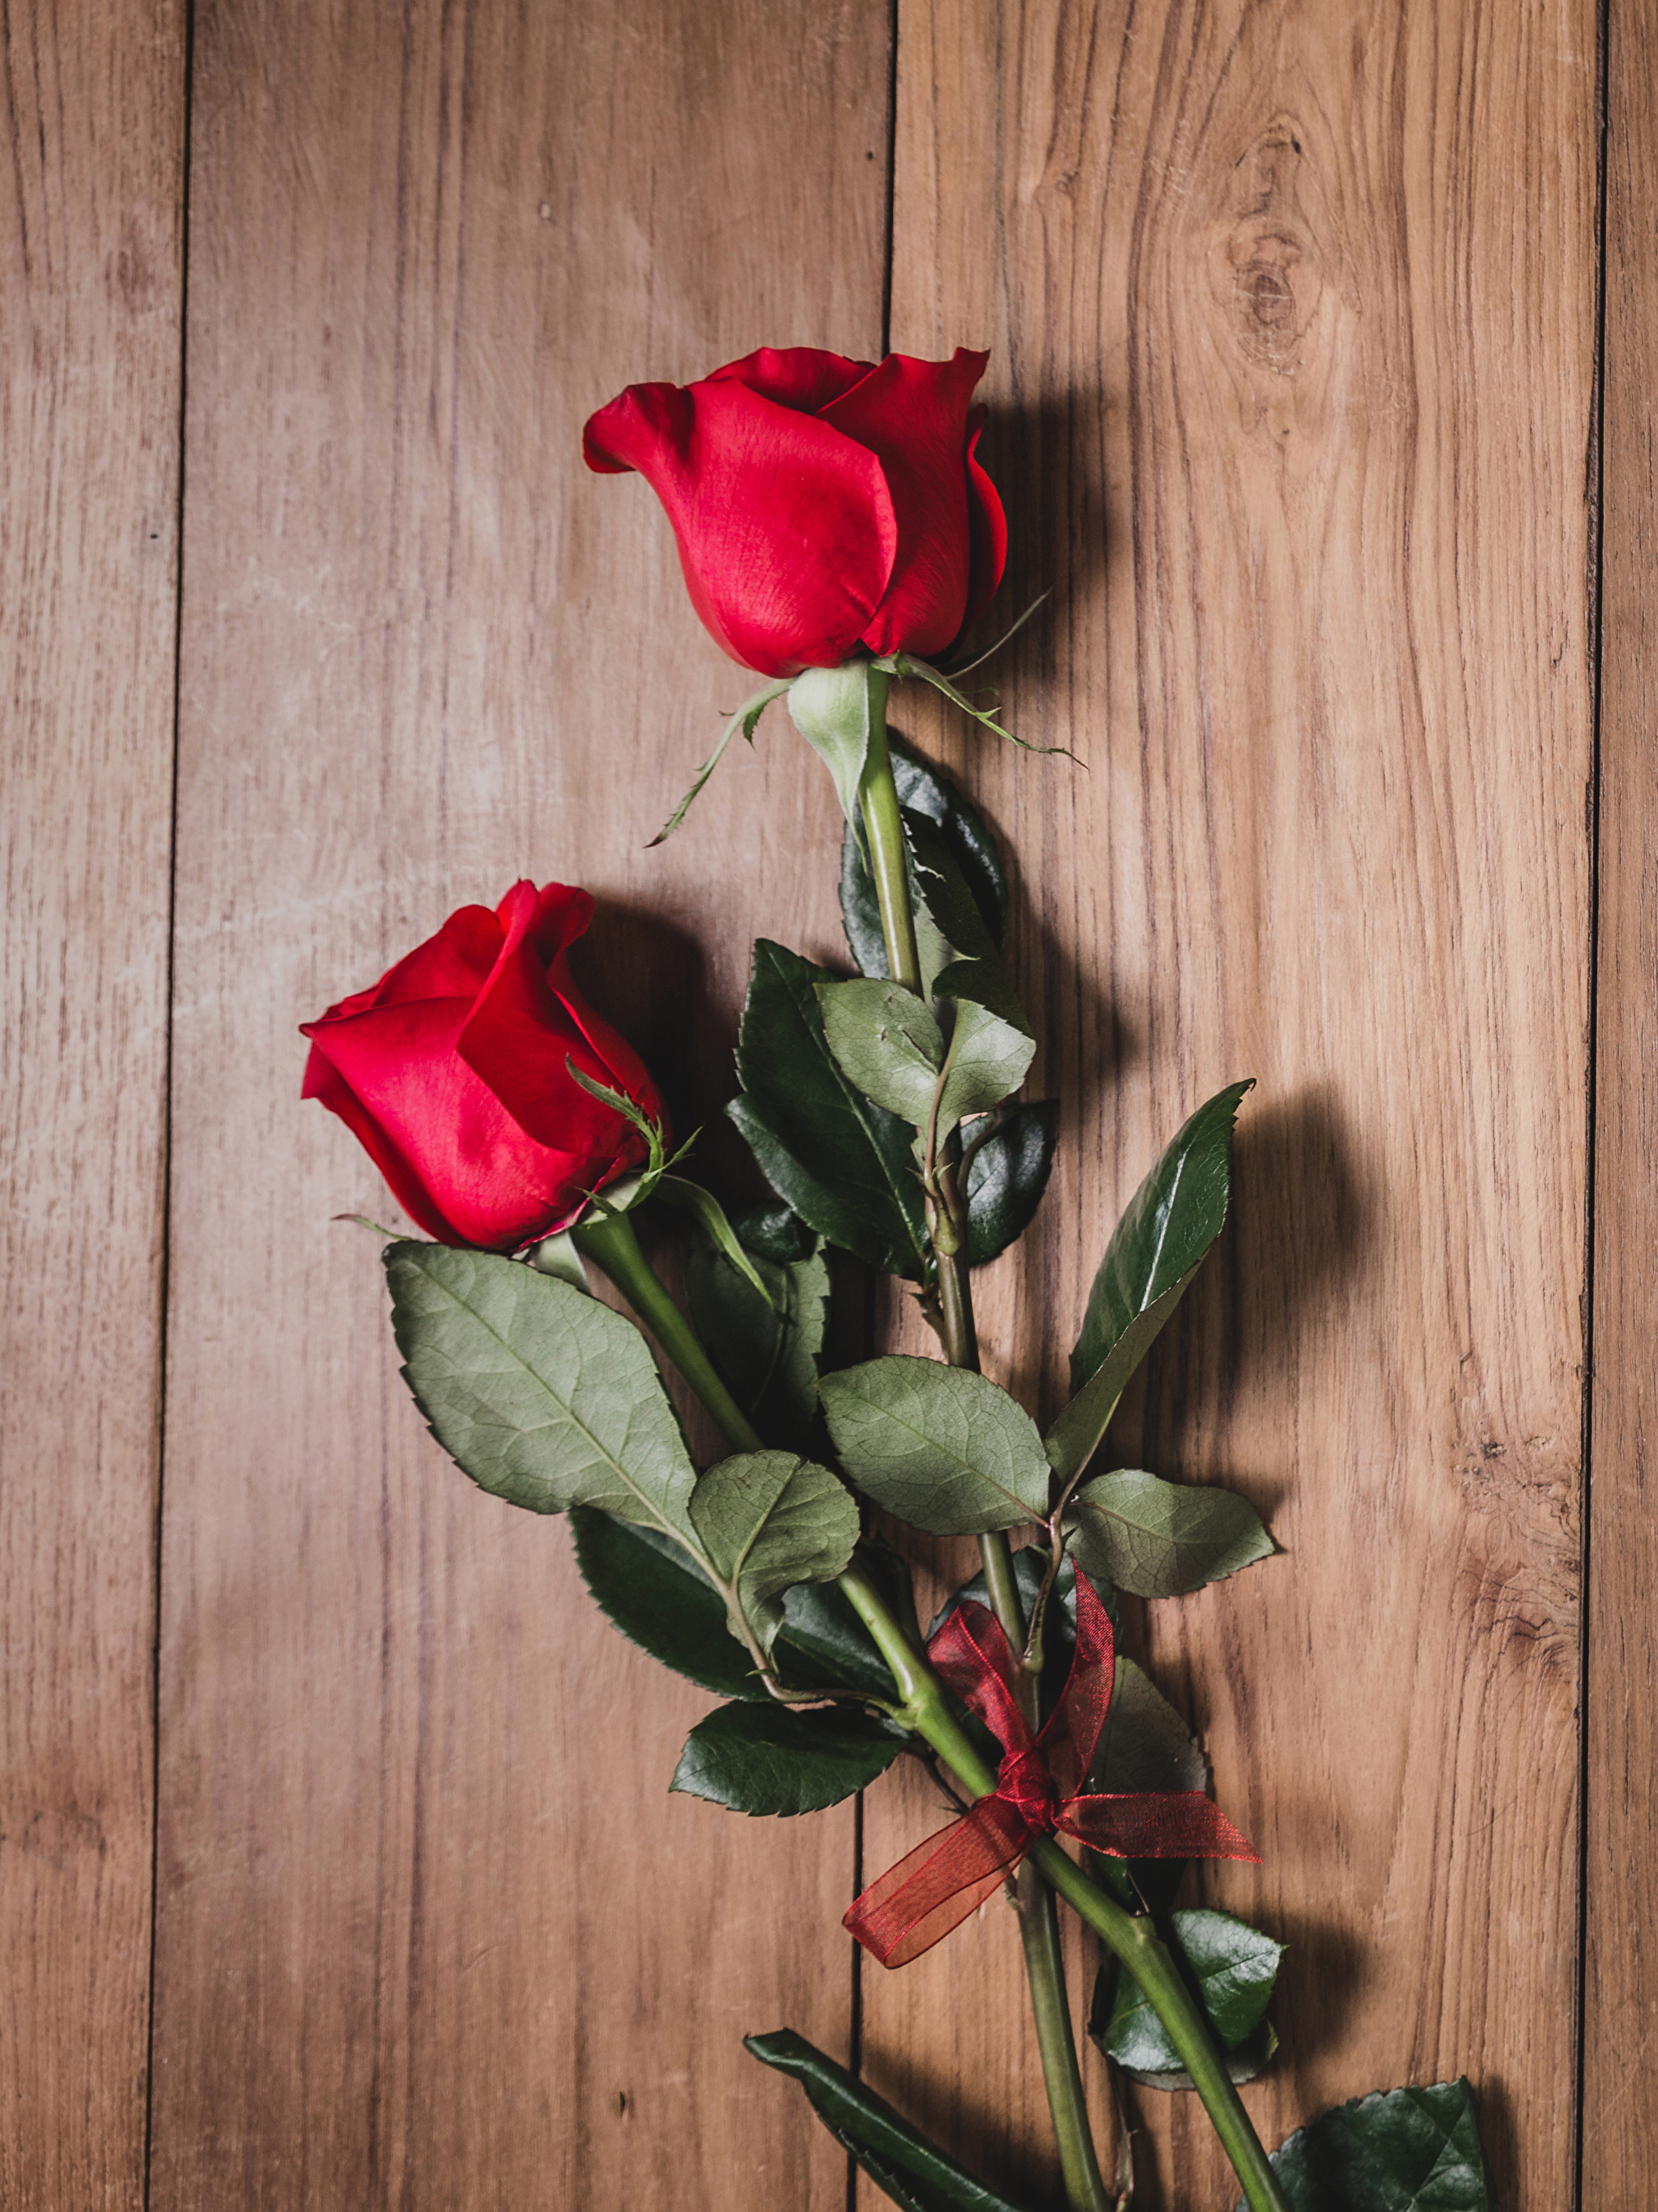 Roses_Wood_planks_Red_Two_530630_2048x27